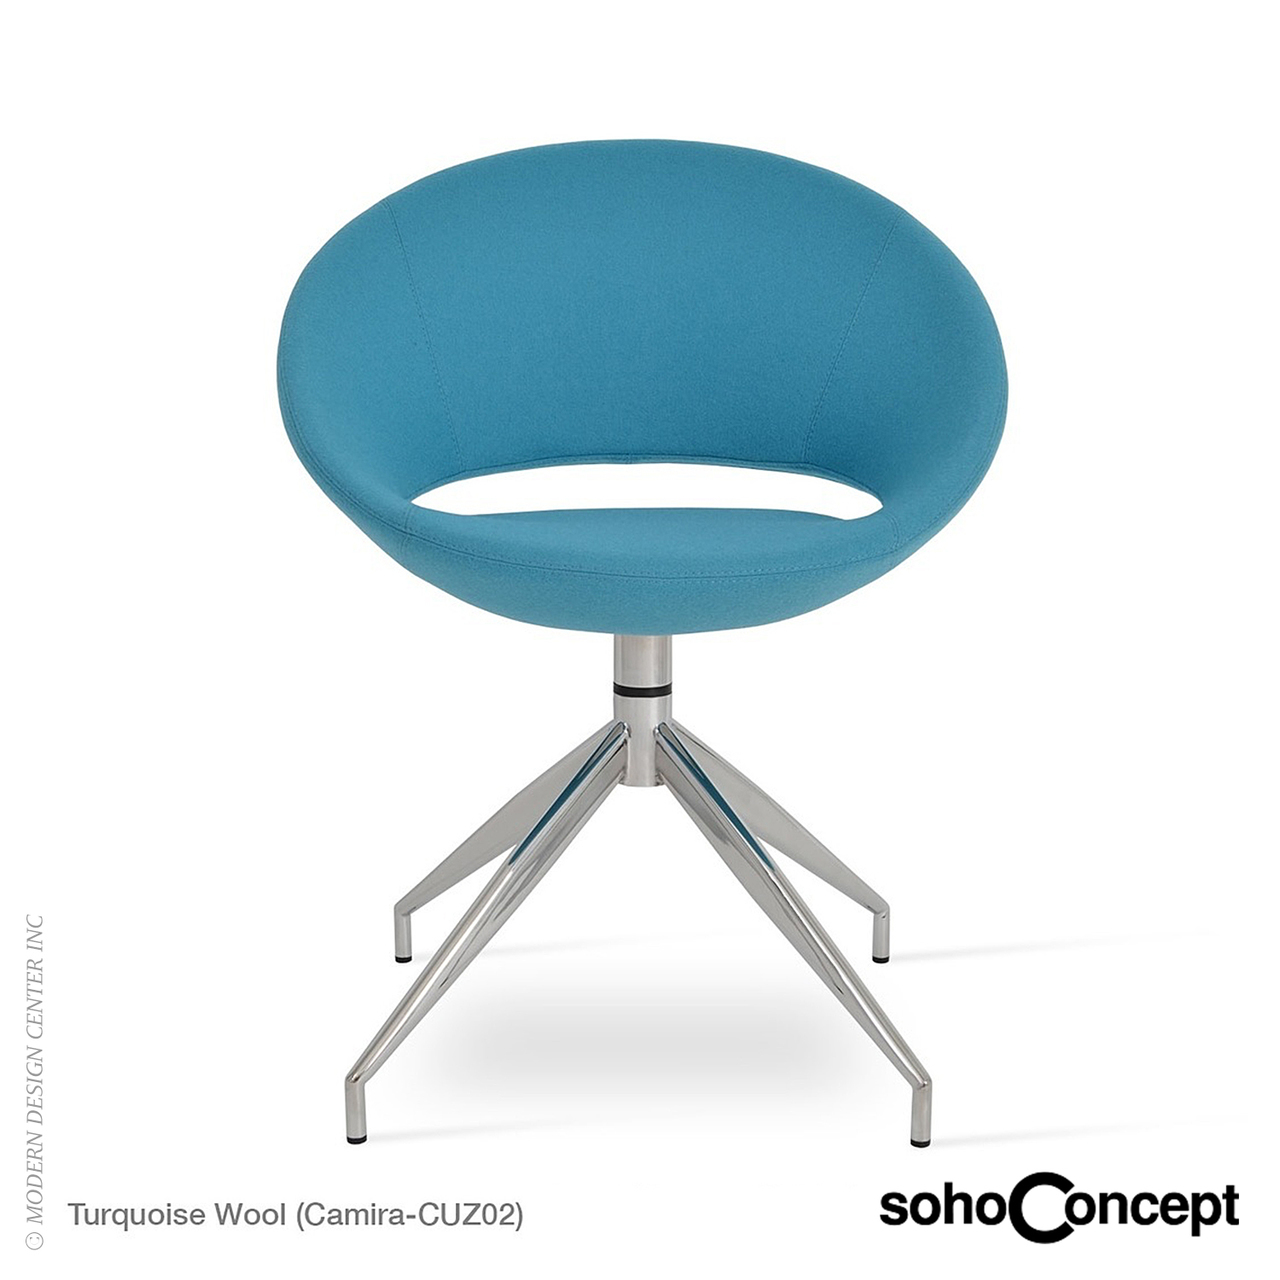 Crescent Spider Swivel Chair - SohoConcept at MetropolitanDecor